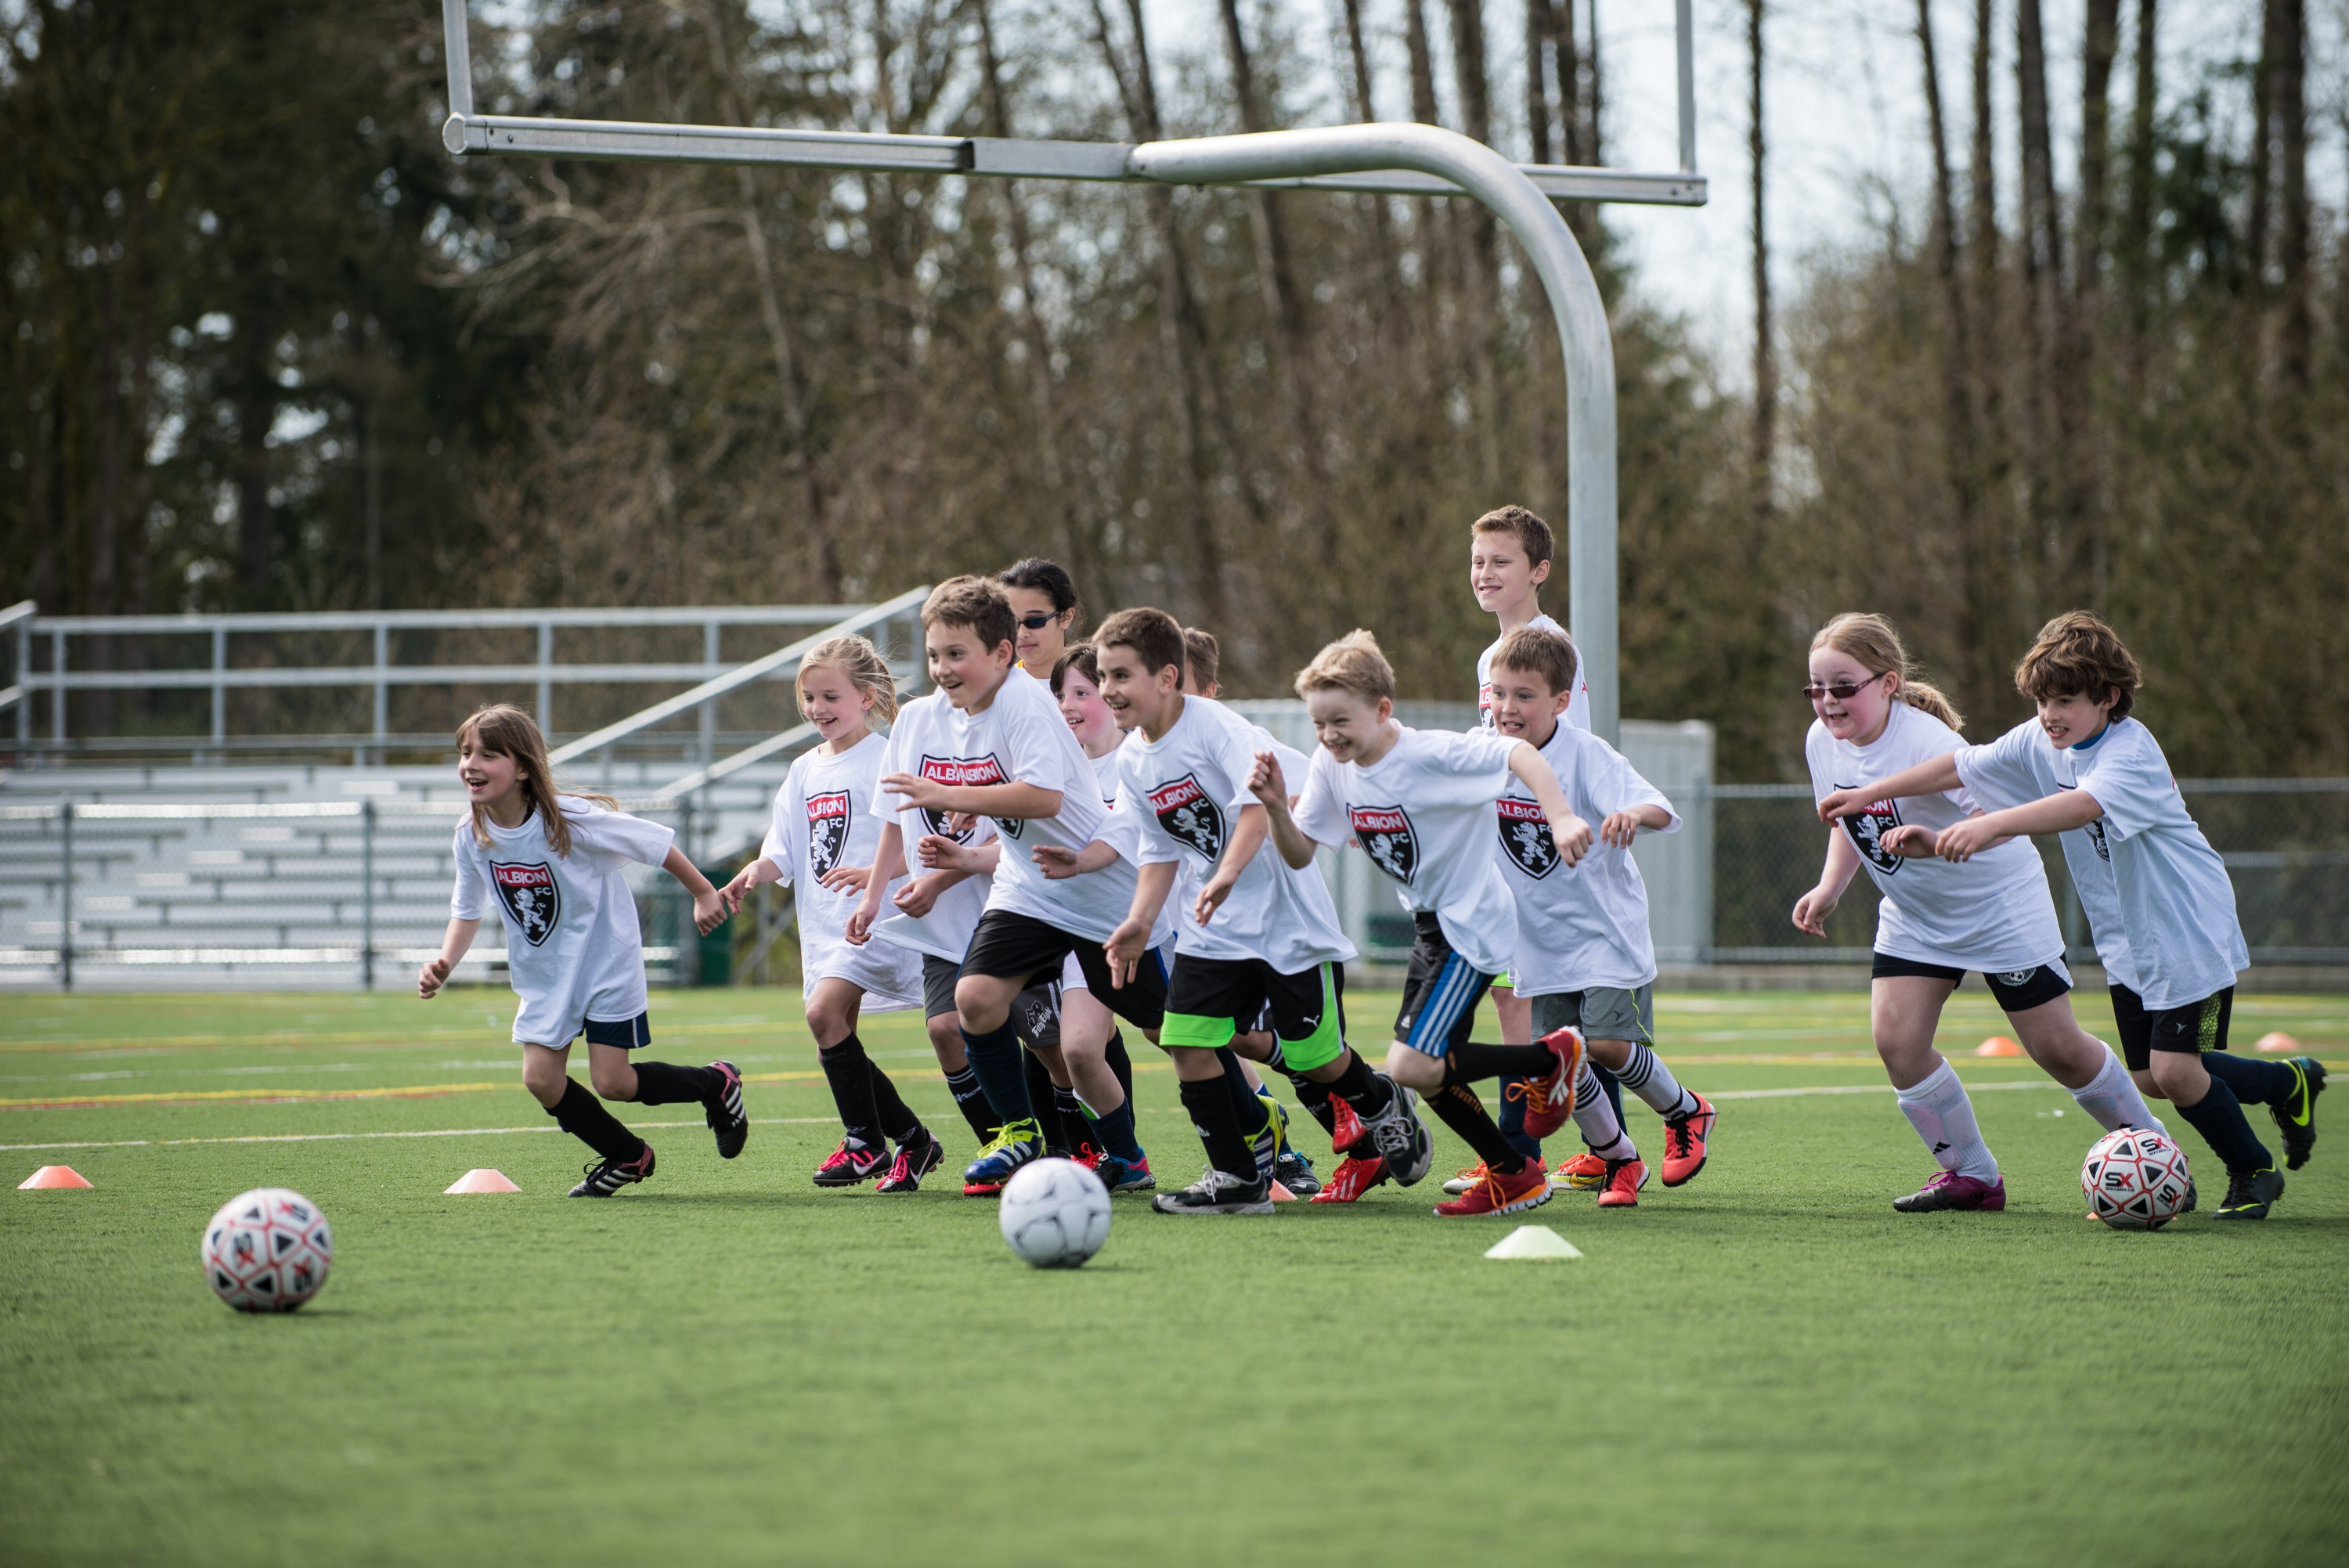 Albion Football Club Spring Soccer Camp